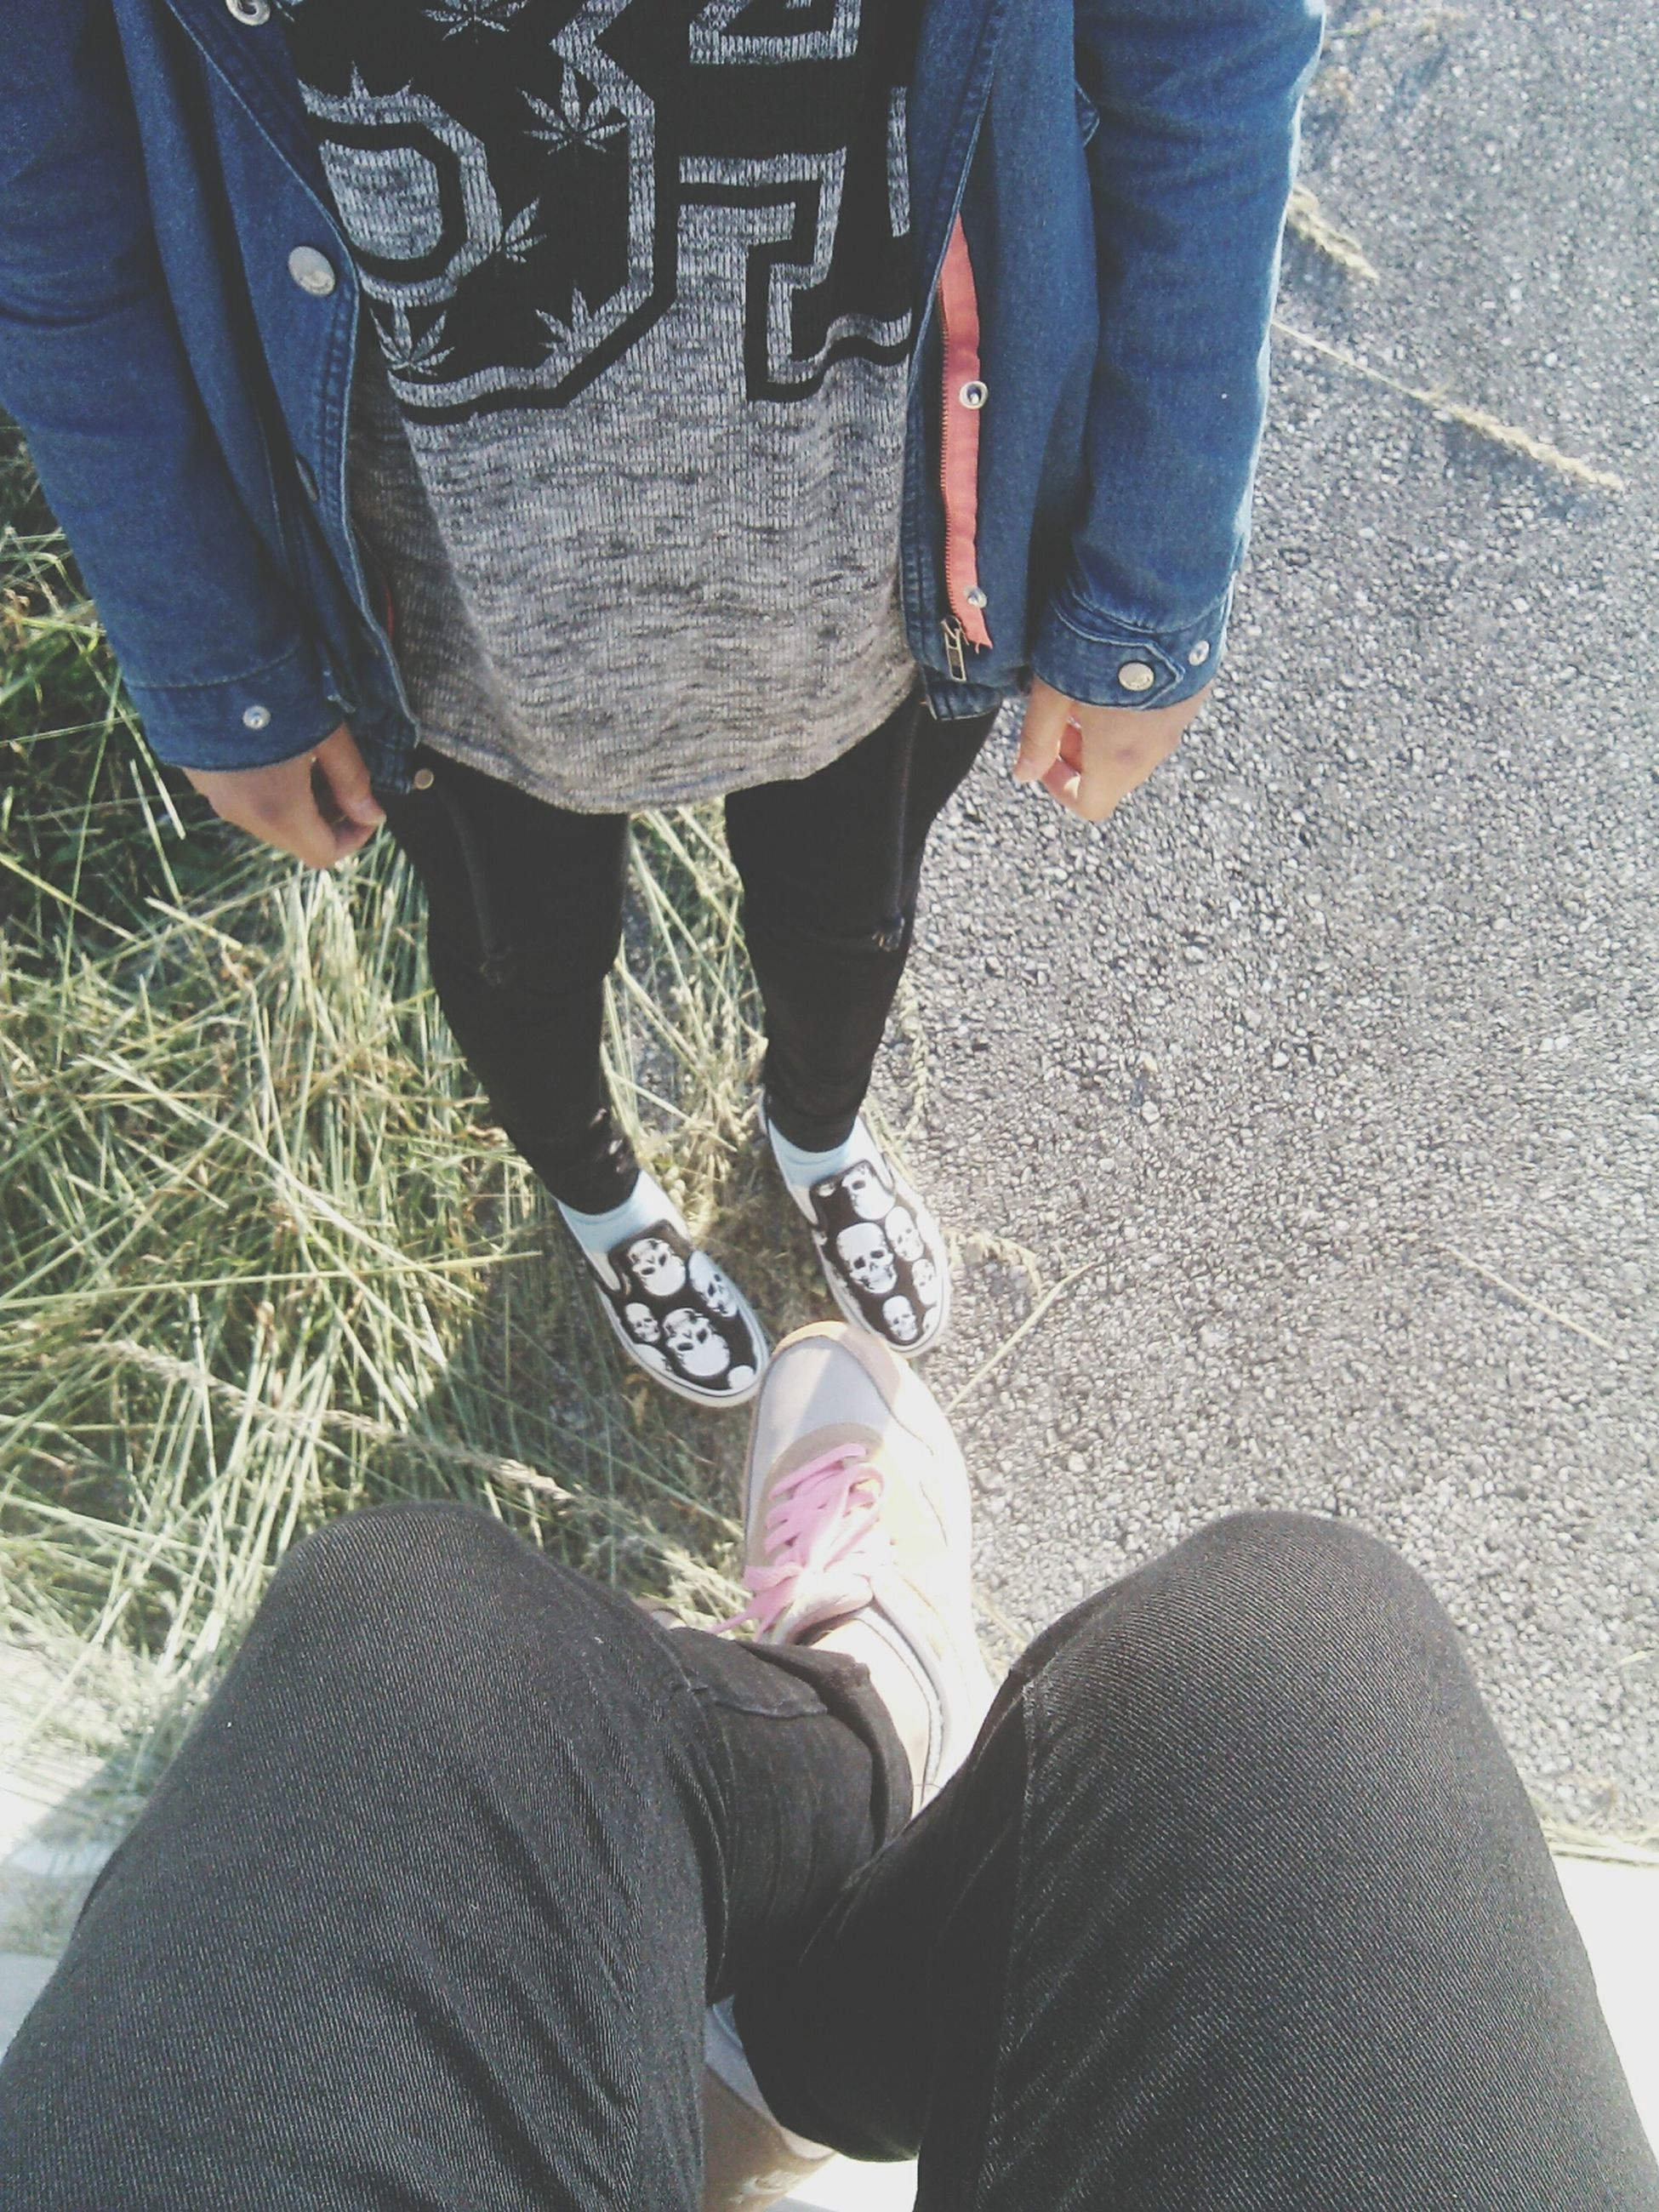 low section, lifestyles, person, men, shoe, casual clothing, jeans, leisure activity, standing, togetherness, bonding, friendship, footwear, high angle view, human foot, street, walking